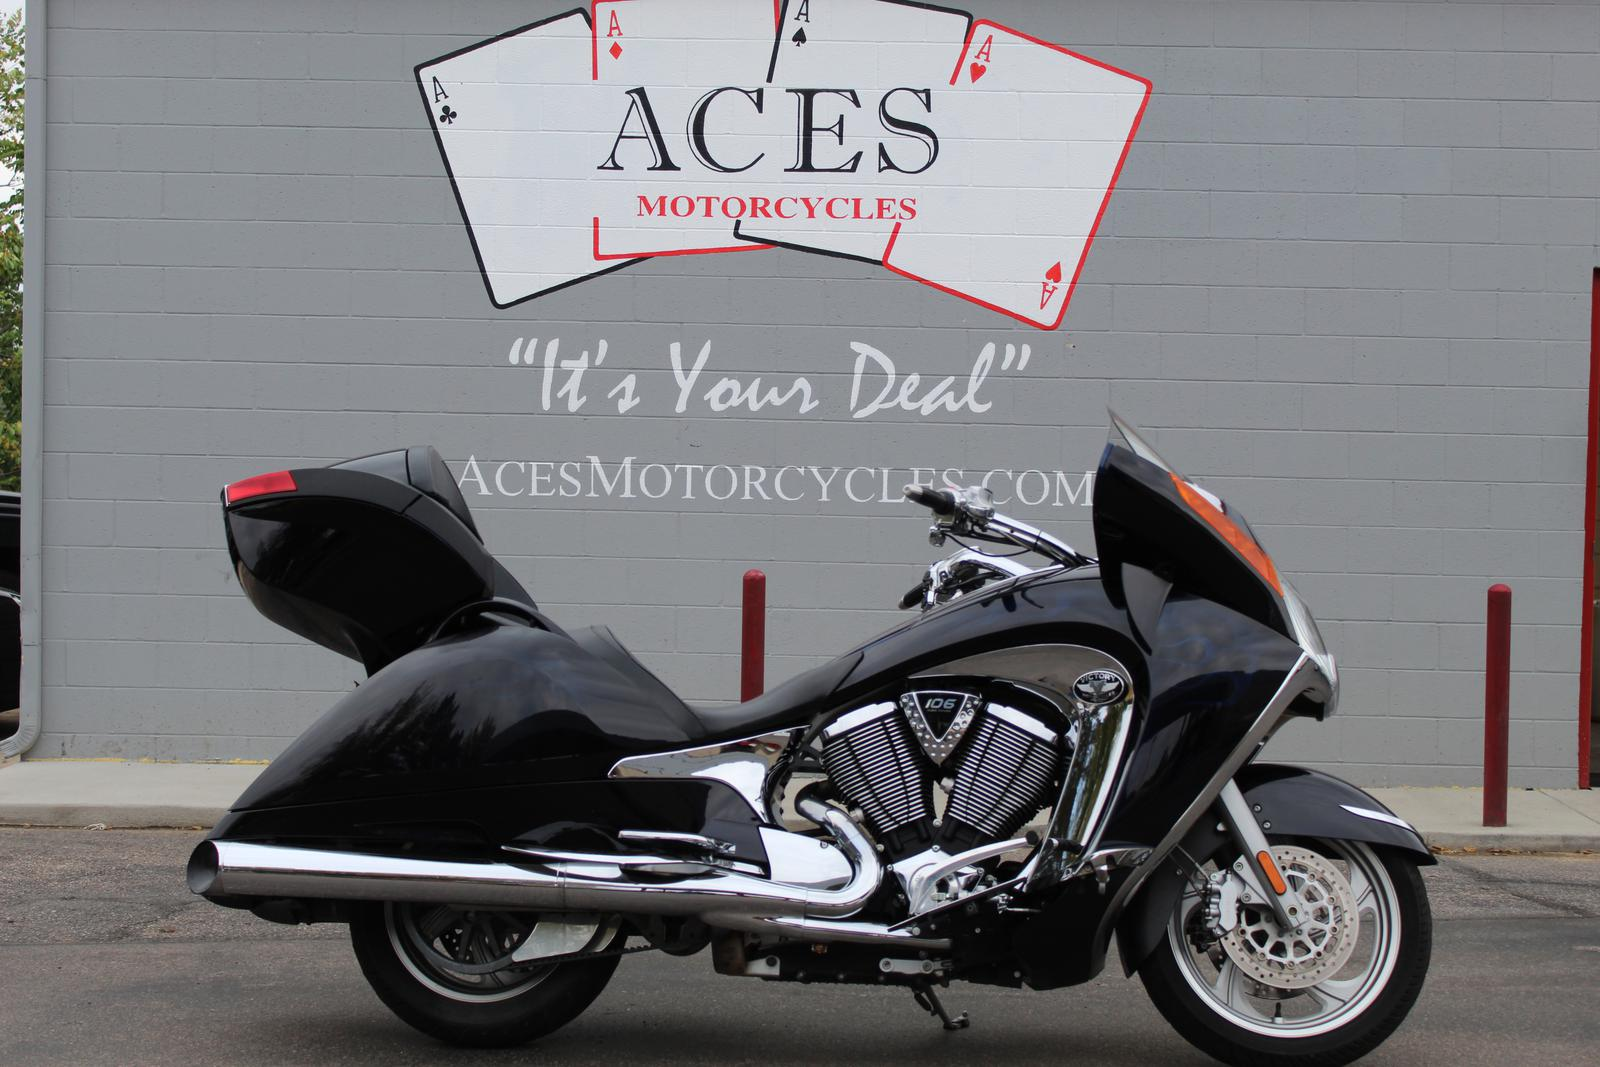 Aces motorcycles fort collins co